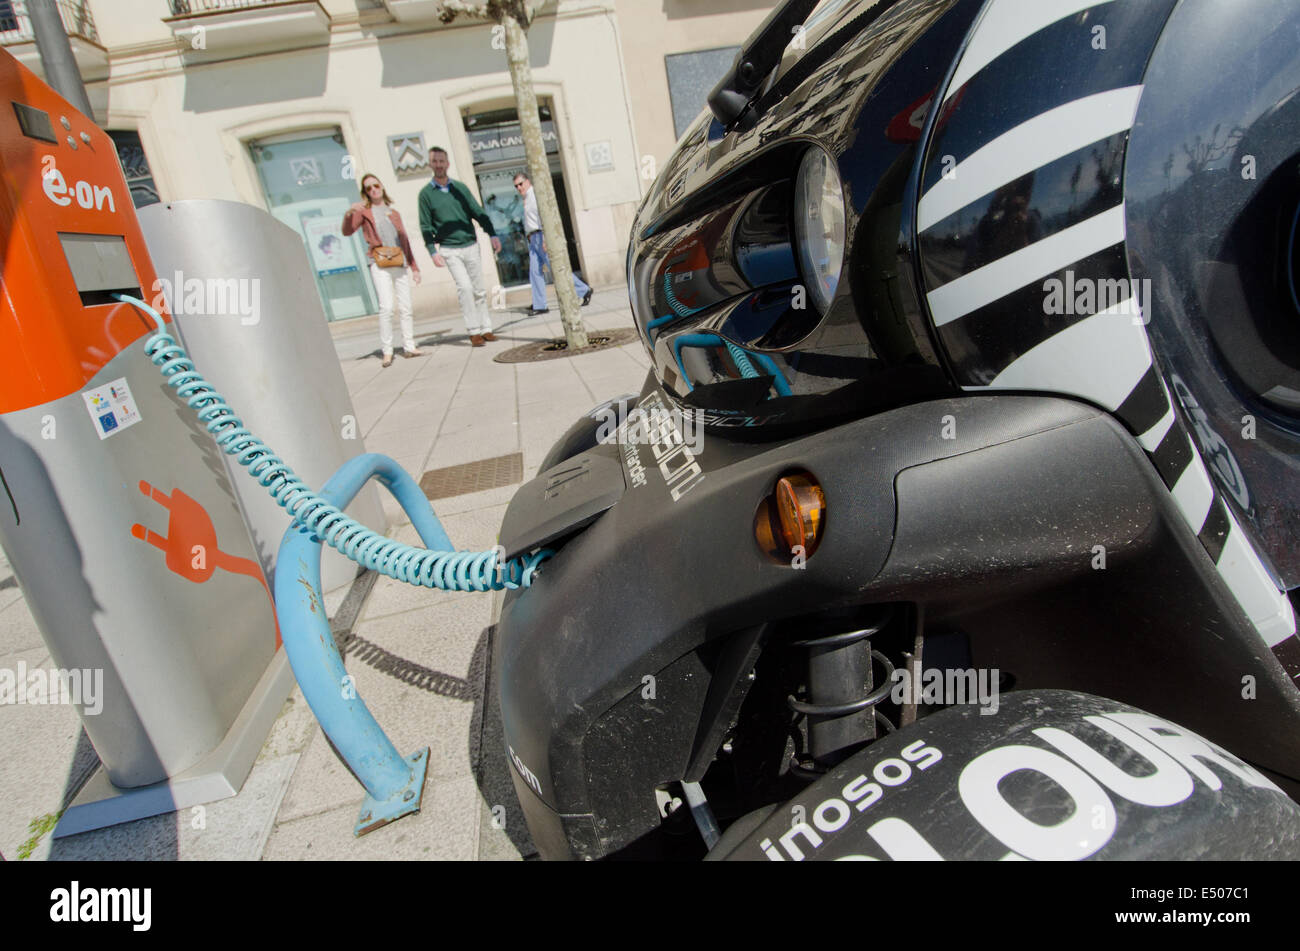 A Renault Twizy electric car gets its battery recharged at an E.on street-side charging station on the Santander Stock Photo